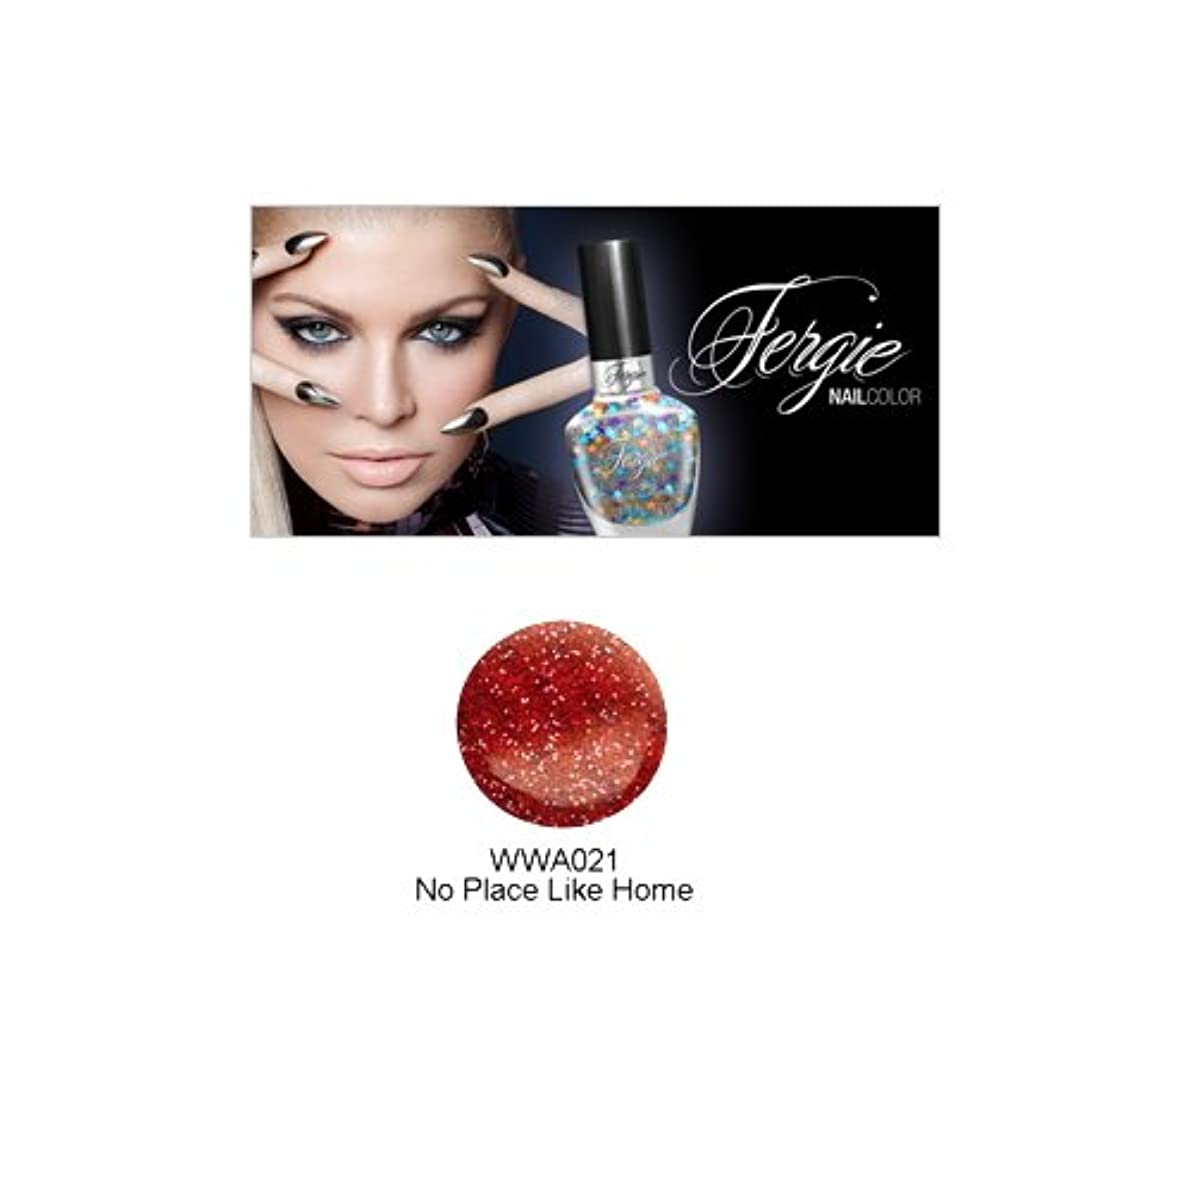 遠い債務者受取人Wet N Wild FERGIE NAIL COLOR - No Place Like Home (並行輸入品)